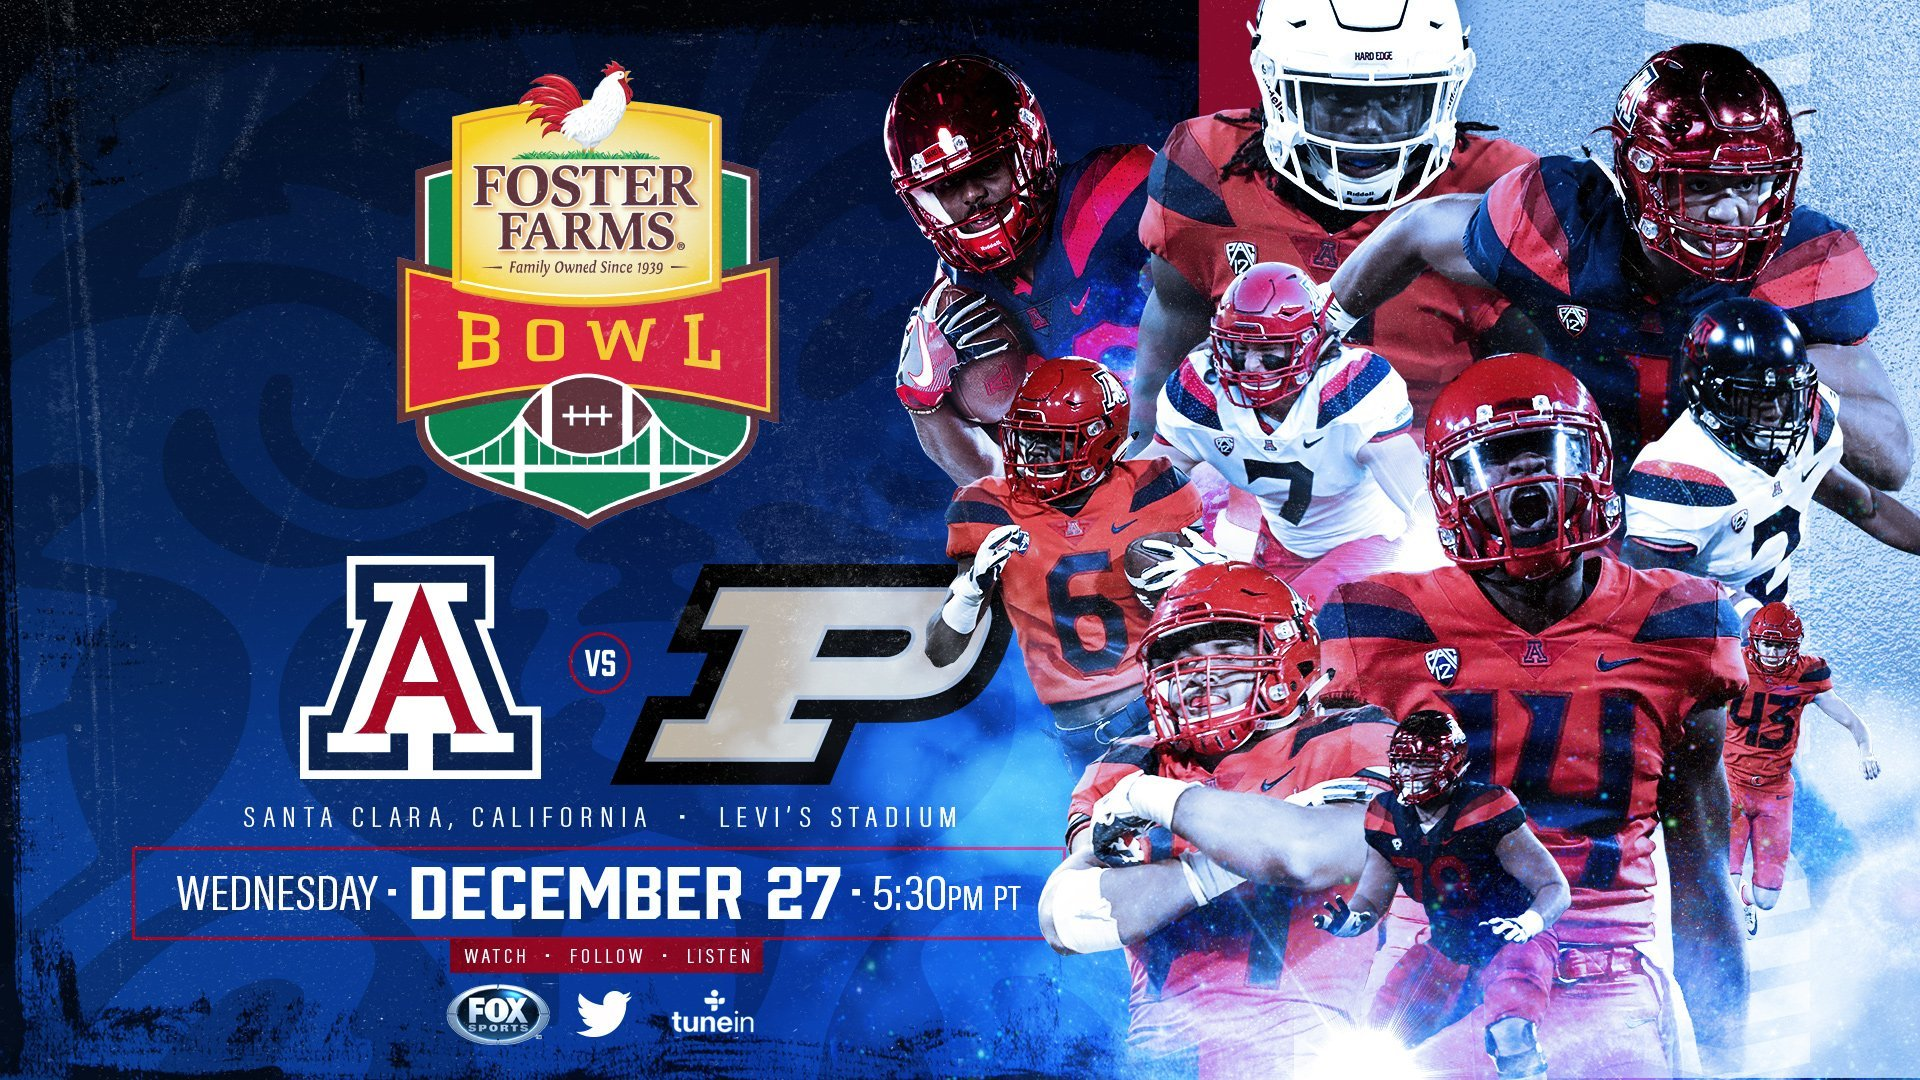 As for the Wildcats, they will head to Santa Clara, California for the Foster Farms Bowl. (Source: Twitter)